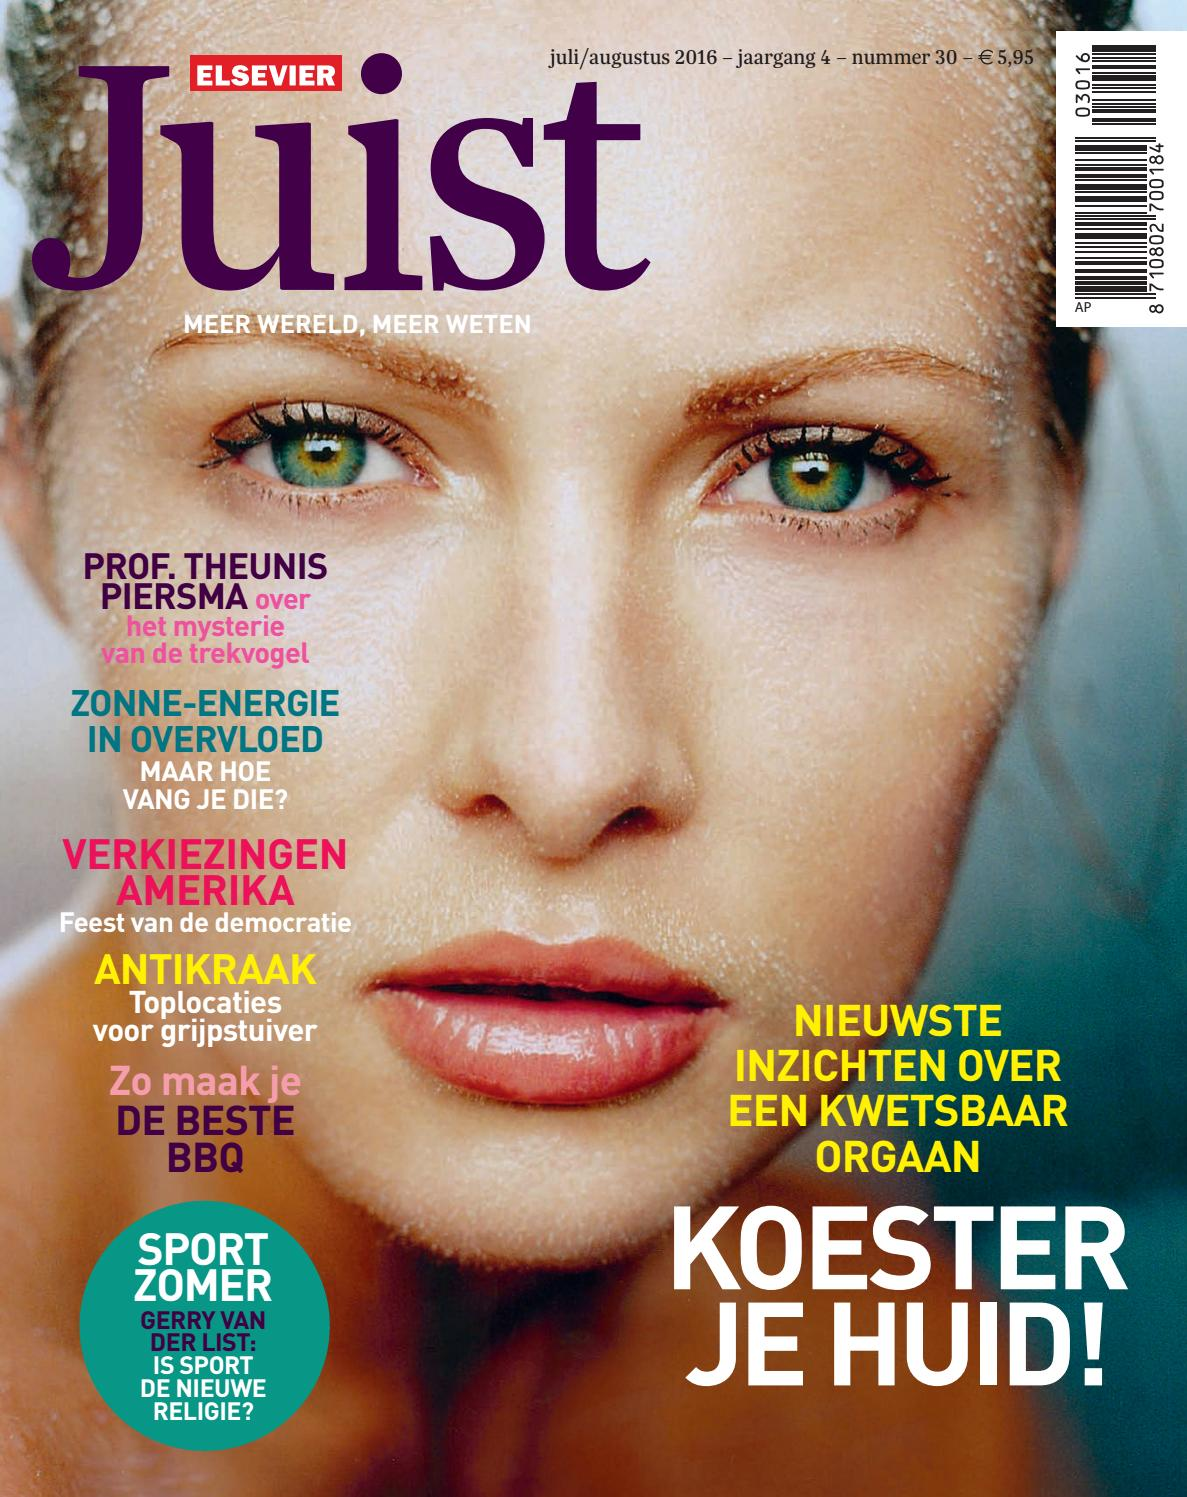 Inkijkexemplaar Juist by Reed Business - issuu